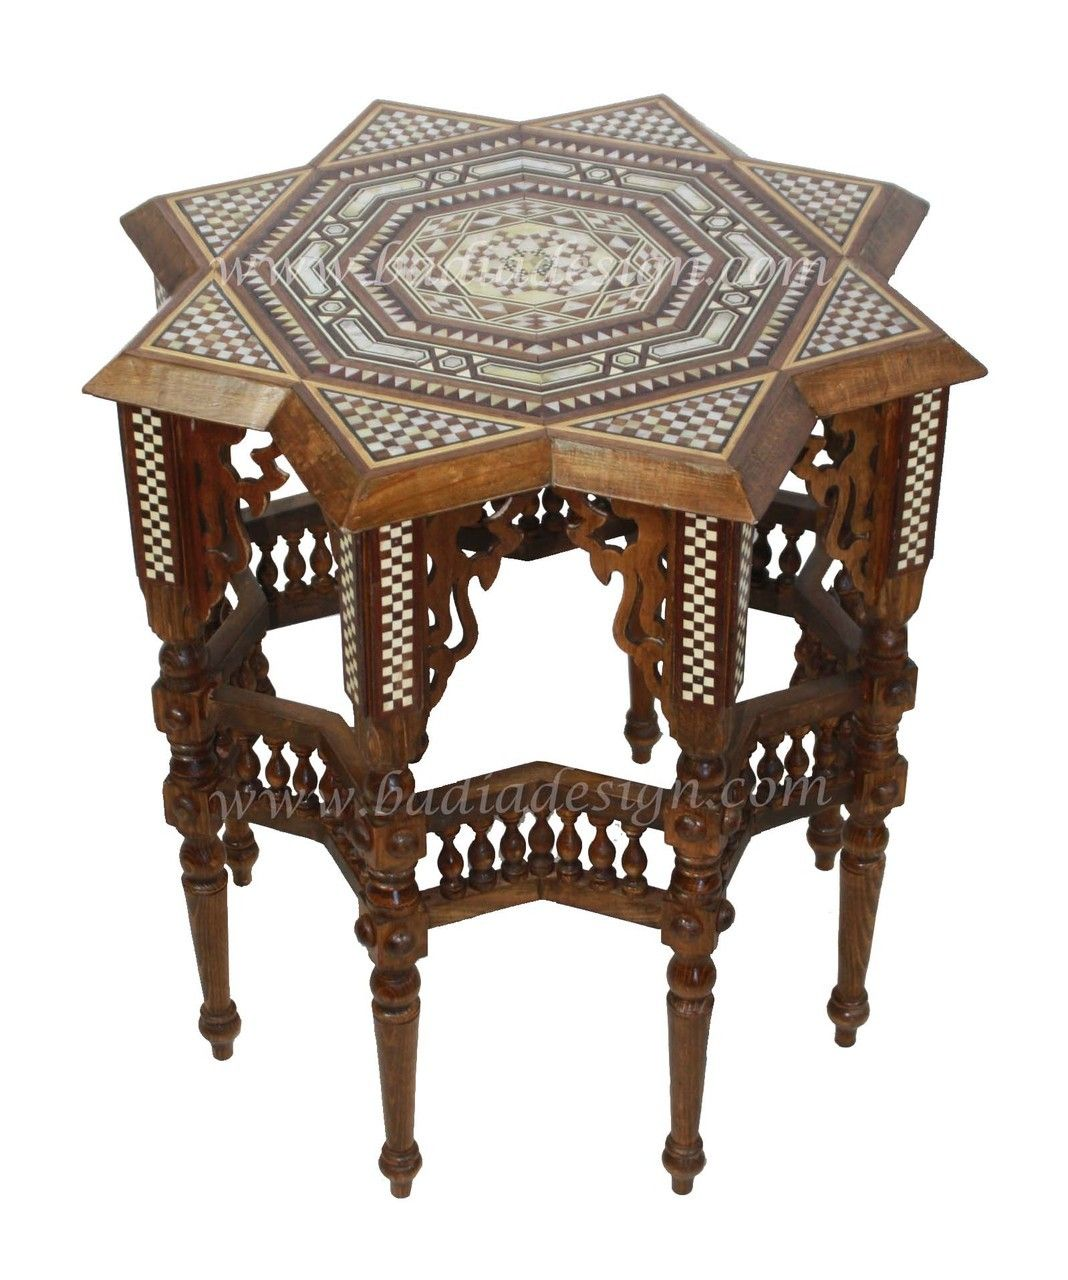 Star Shaped Syrian Style Coffee Table Mop St062 Upscale Living